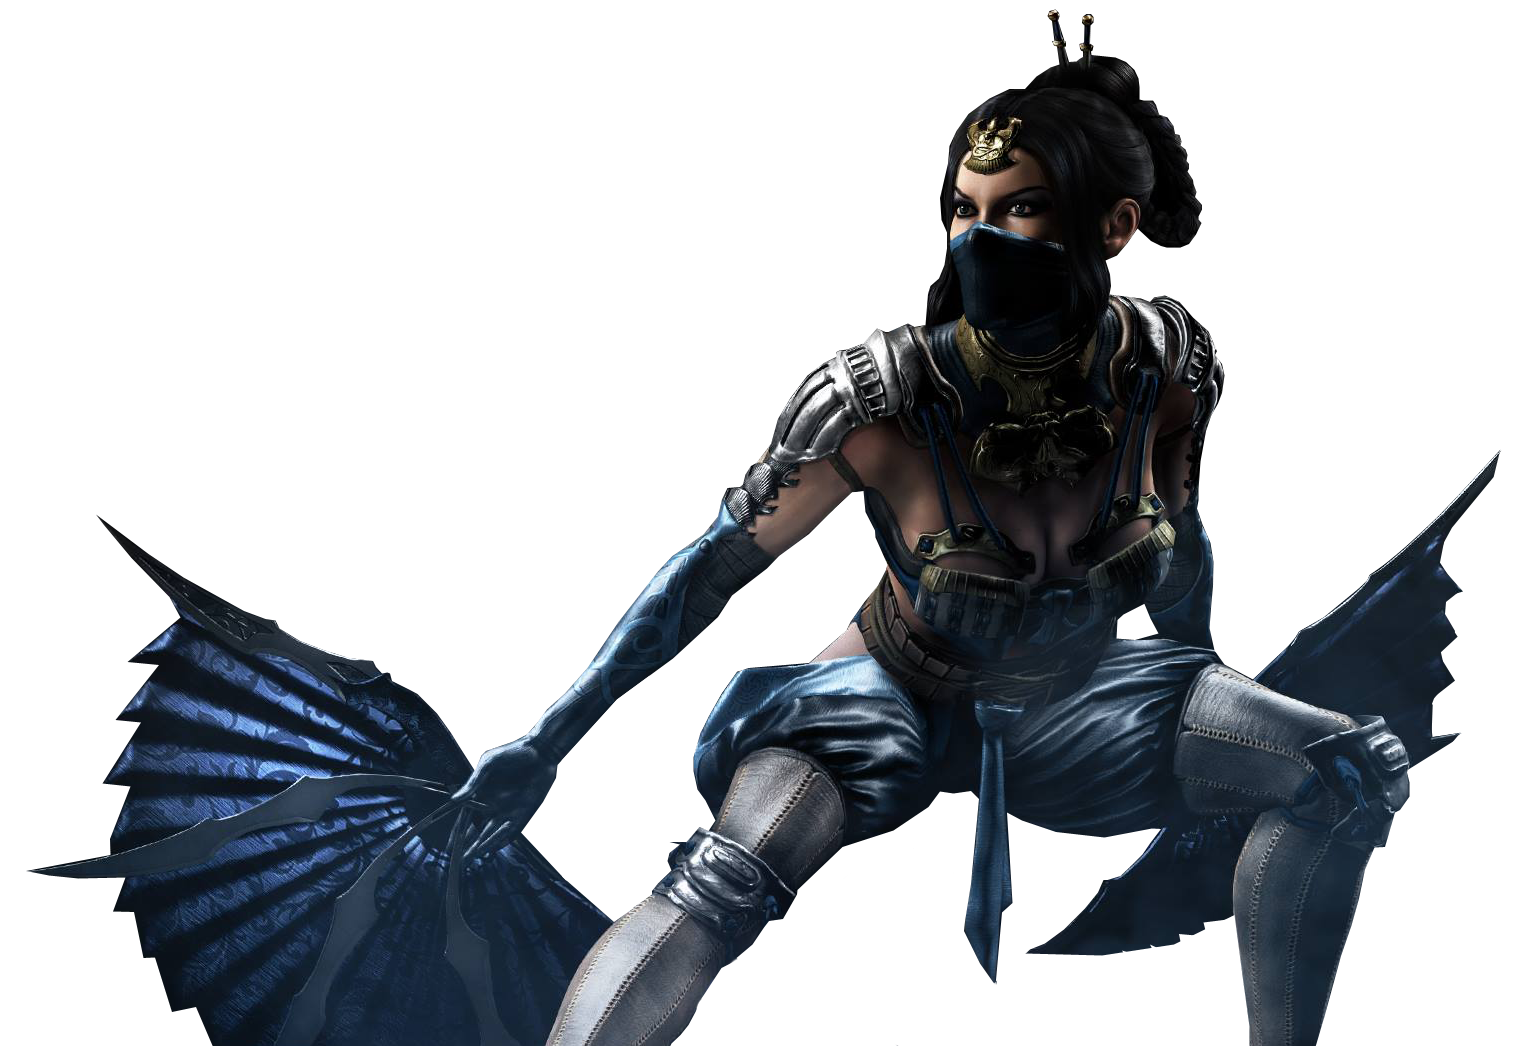 Kitana drawing full body. A review of the